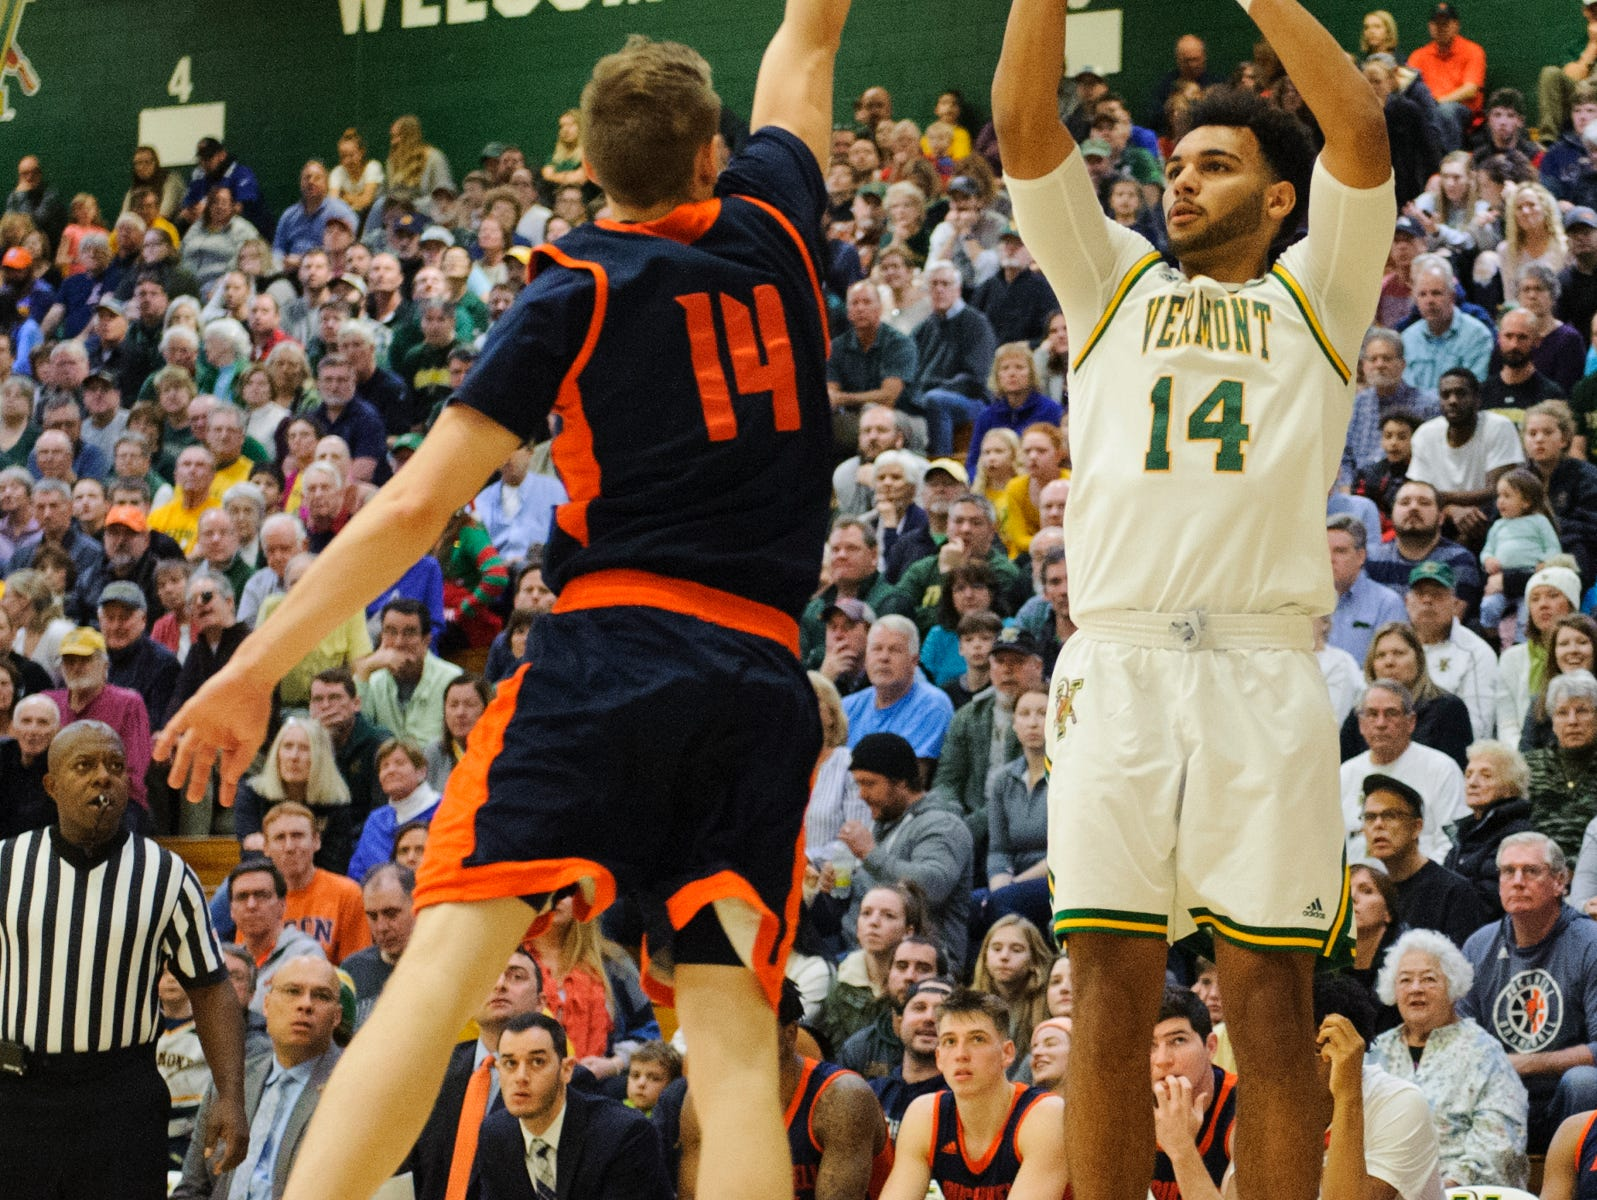 Vermont forward Isaiah Moll (14) shoots a three pointer over Bucknell's Ben Robertson (14) during the men's basketball game between the Bucknell Bison and the Vermont Catamounts at Patrick Gym on Sunday afternoon November 25, 2018 in Burlington.